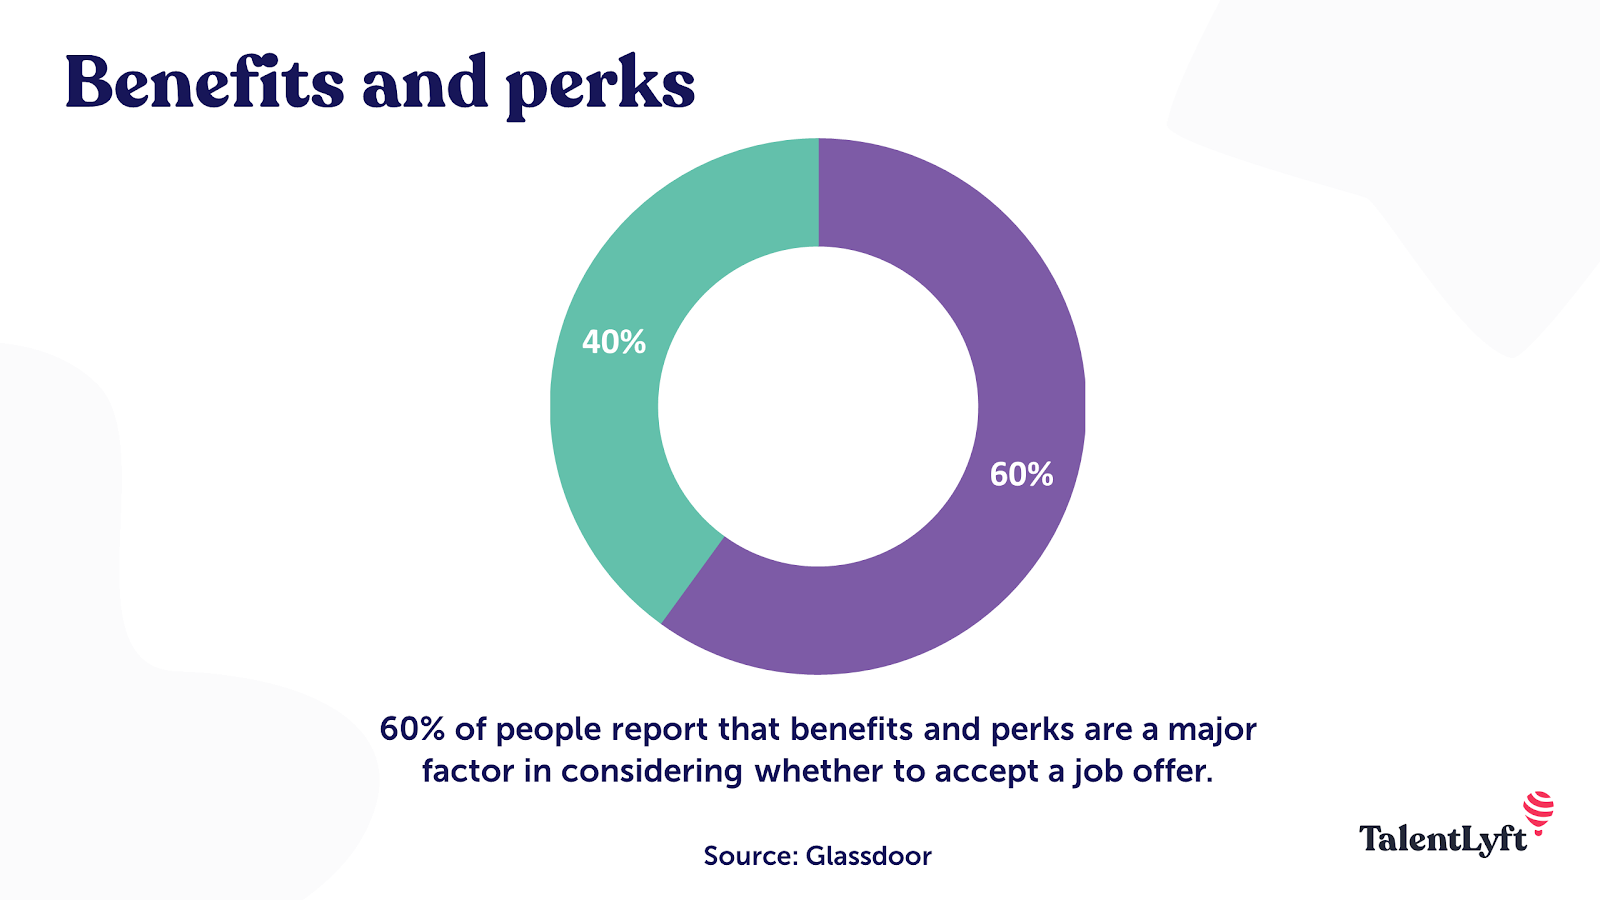 Importance of perks and benefits in hiring and attracting candidates